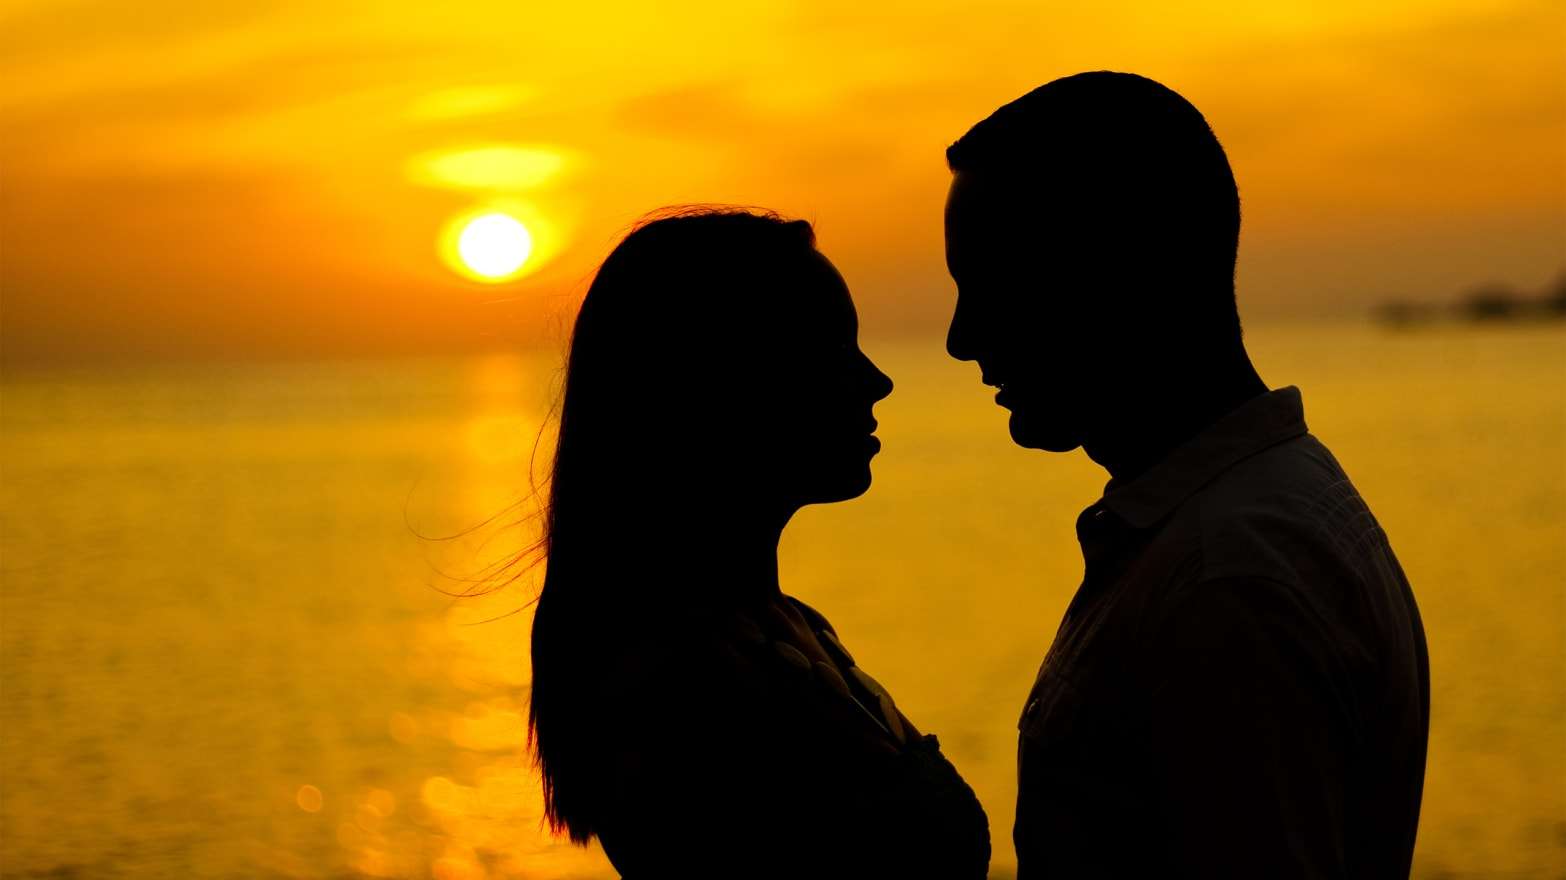 Consentual father daughter sexual relationships phrase